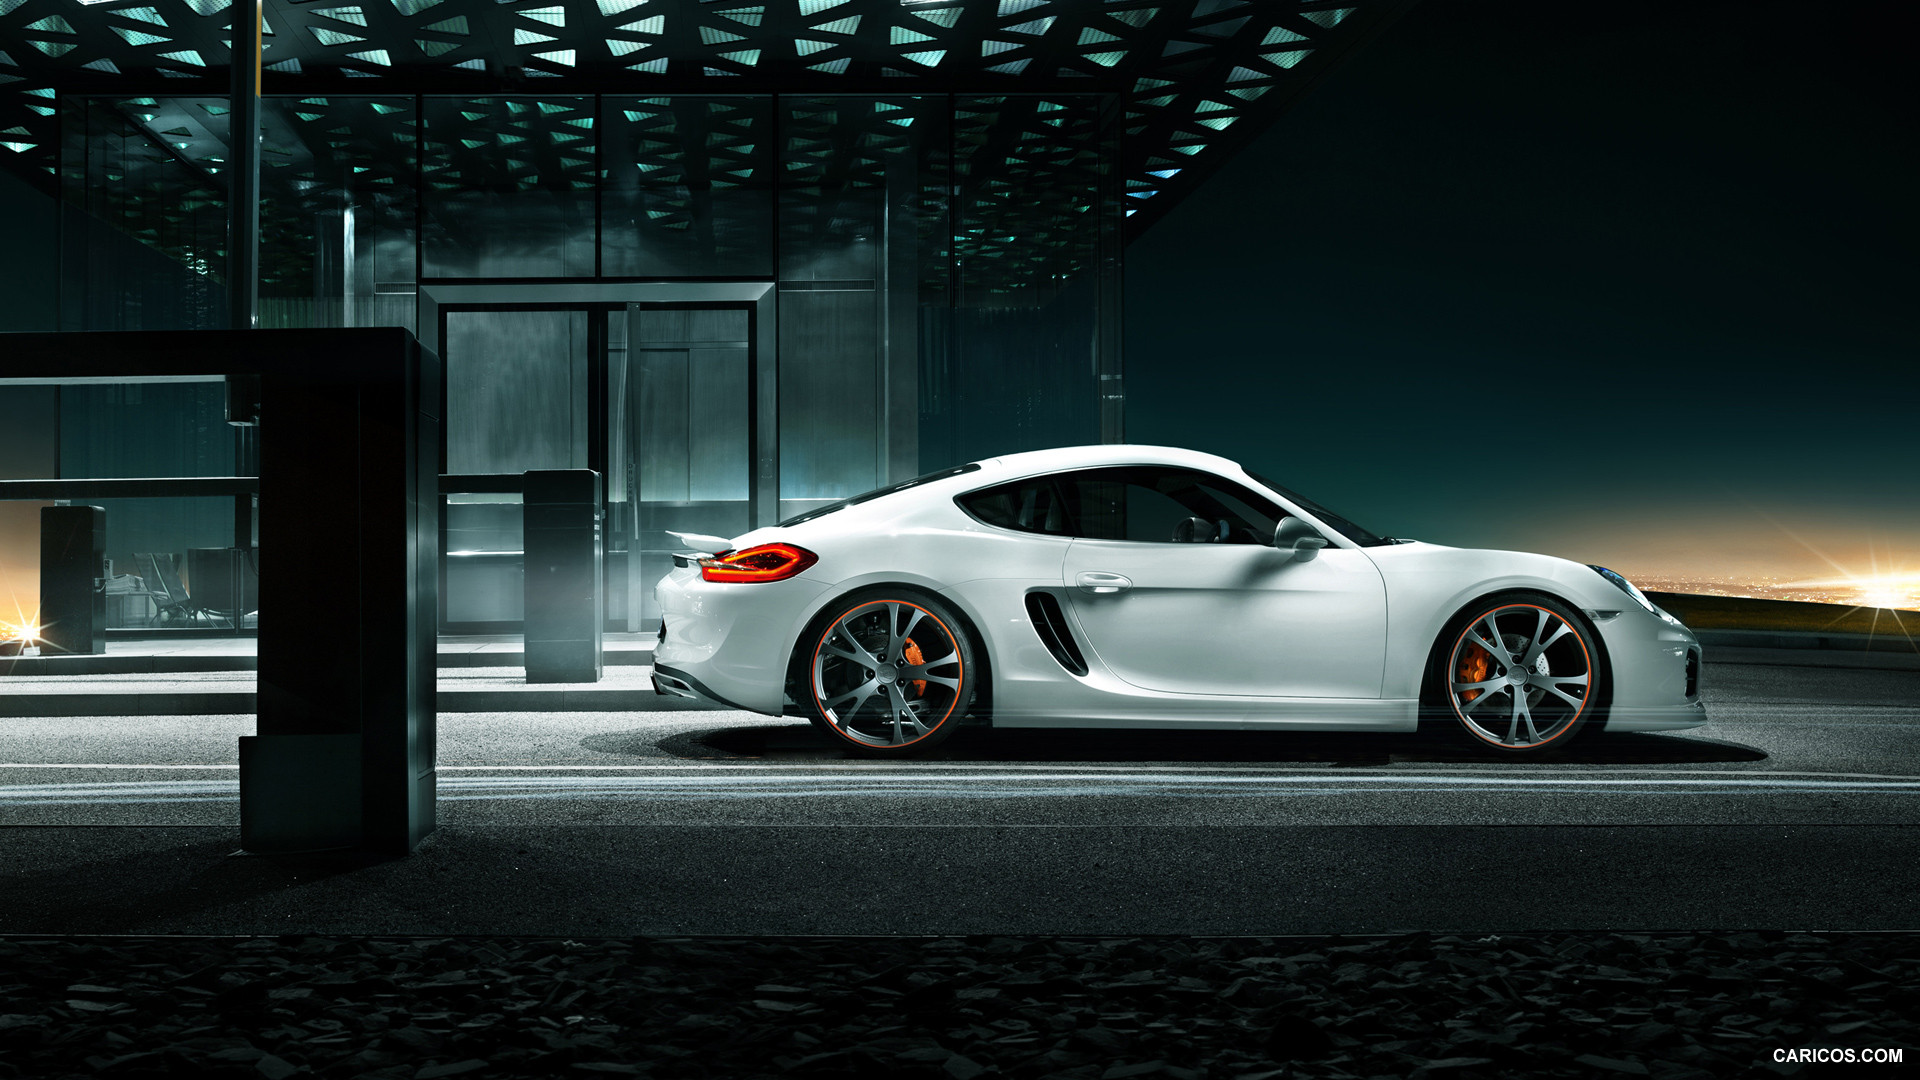 1920x1080 - Porsche Cayman Wallpapers 29